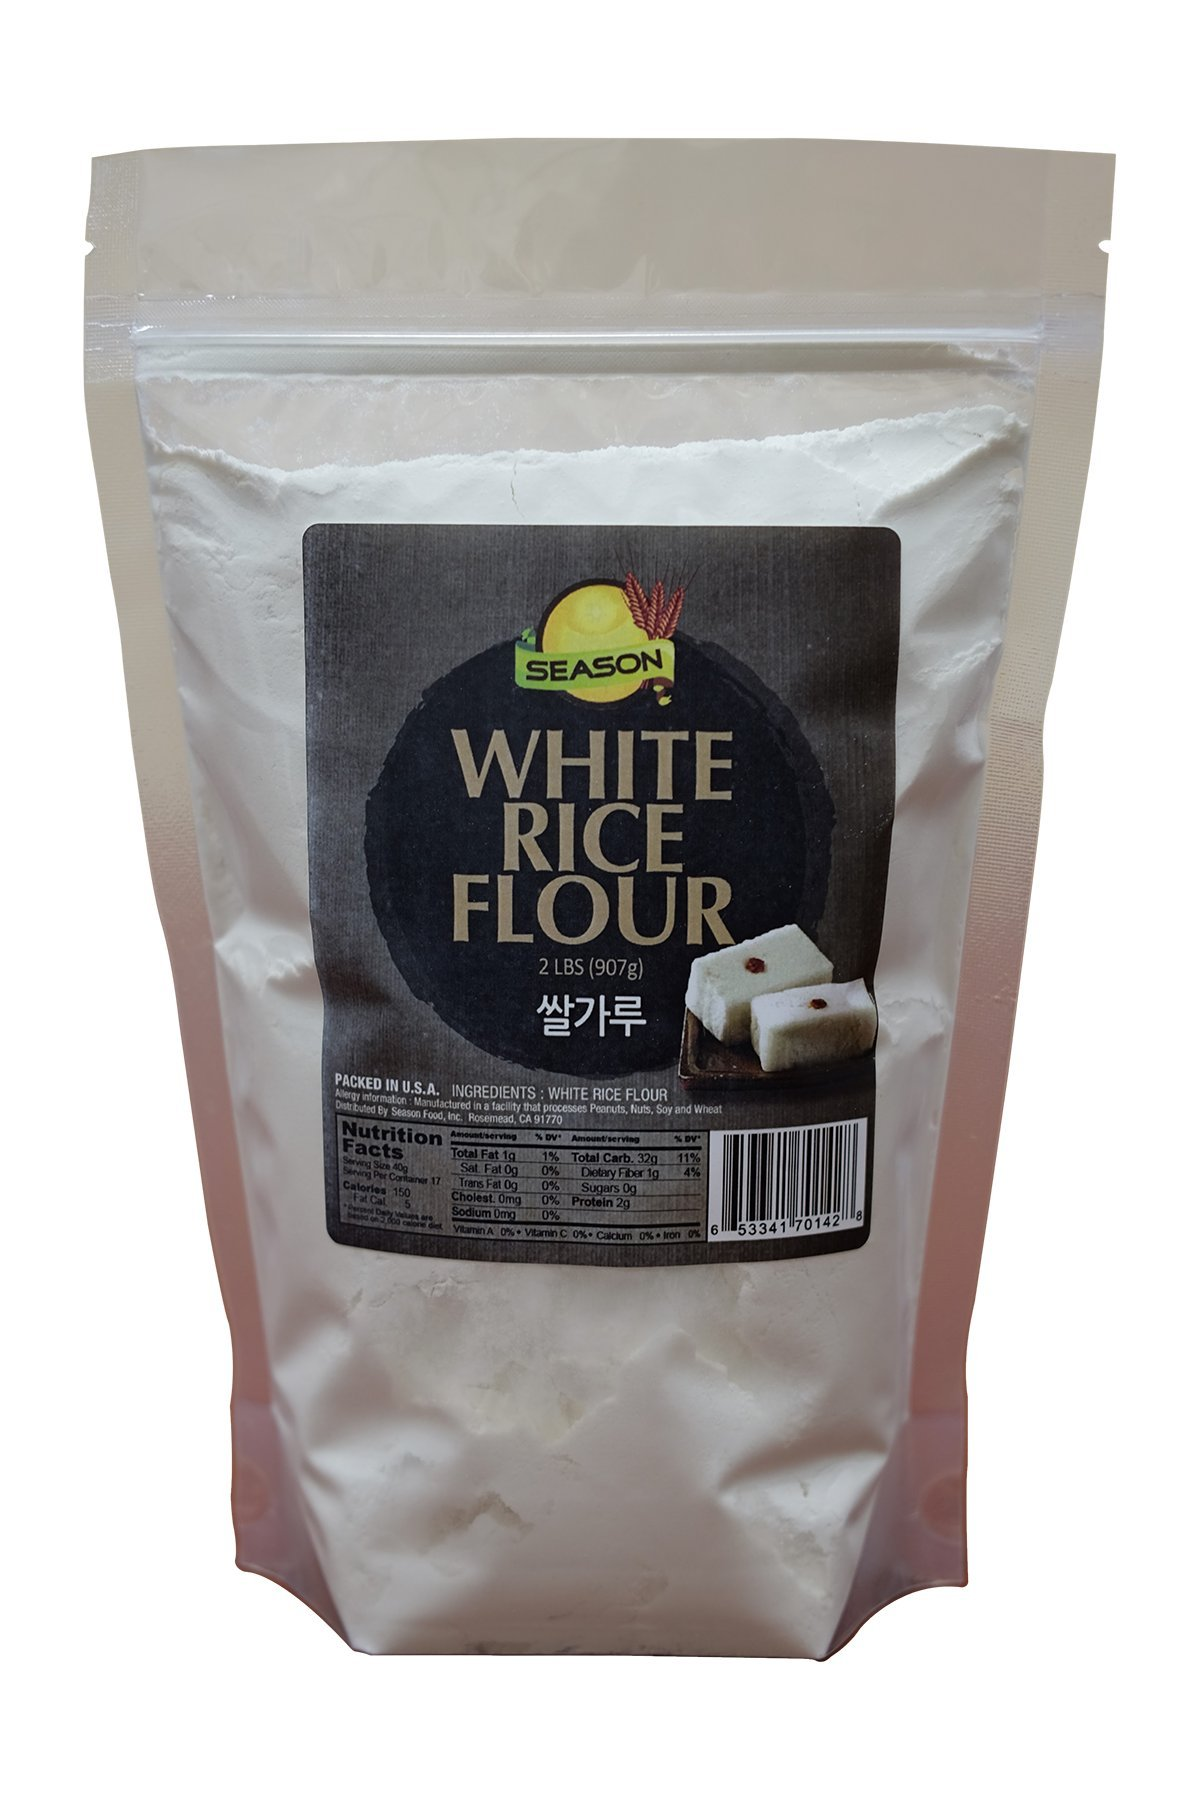 Season White Rice Flour, 2-Pound